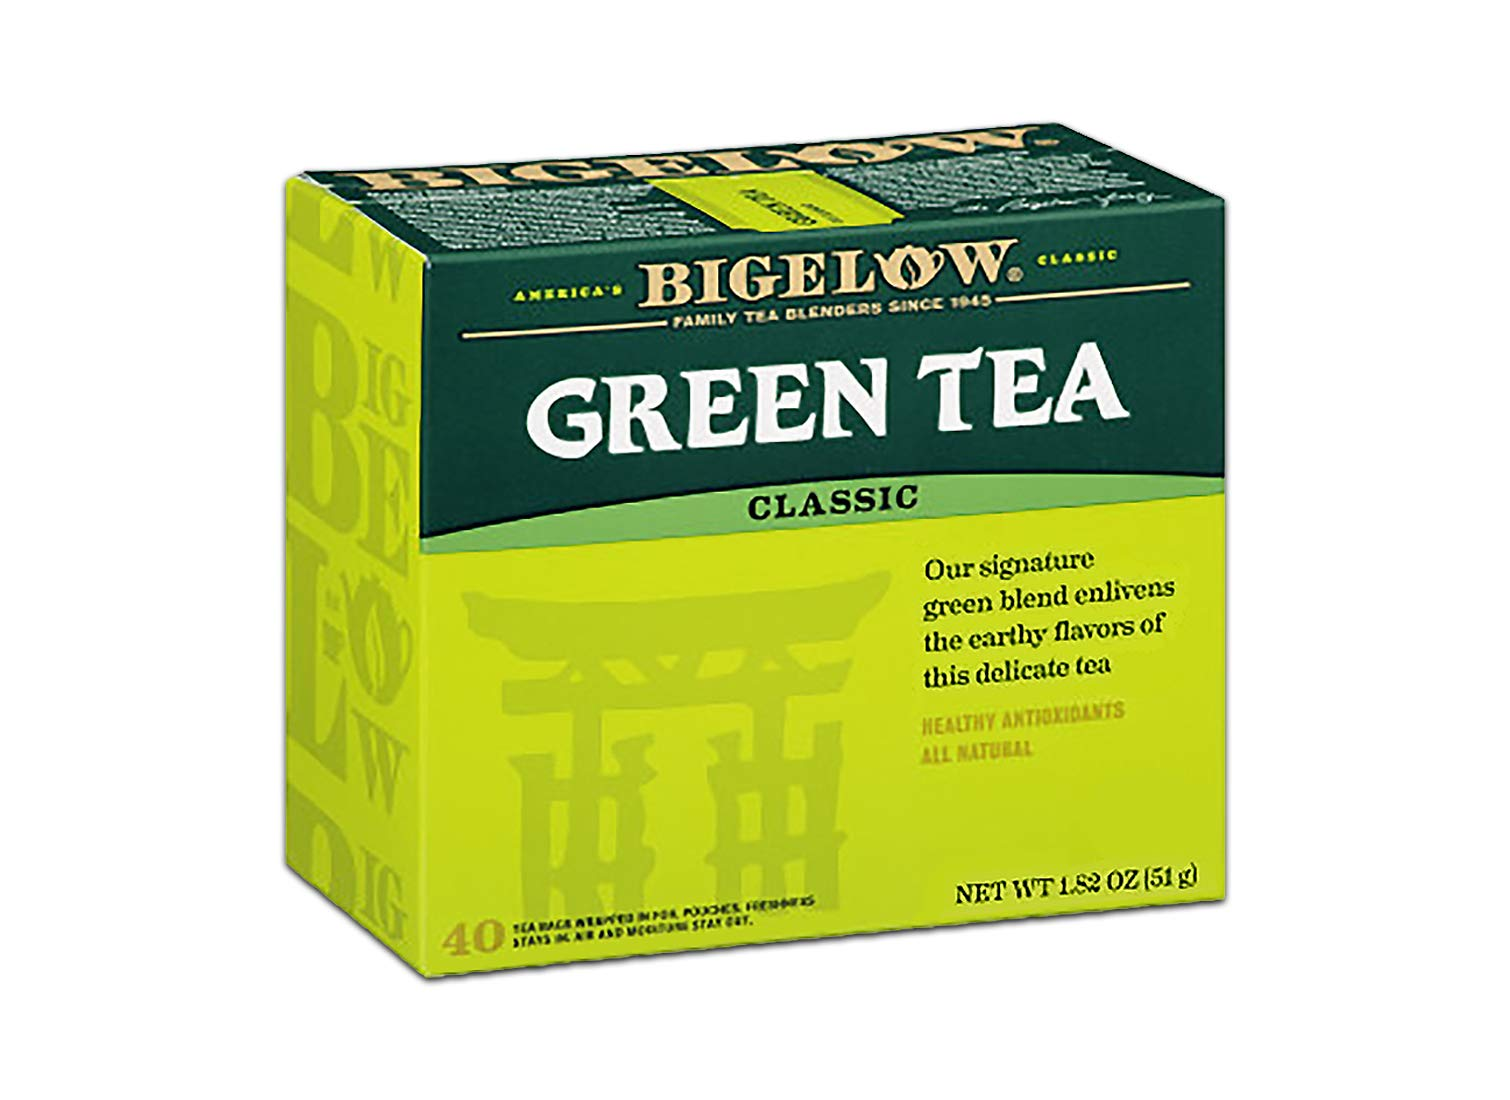 Bigelow Classic Green Tea Bags 40-Count Boxes (Pack of 6), 240 Tea Bags Total Caffeinated Individual Green Tea Bags, for Hot Tea or Iced Tea, Drink Plain or Sweetened with Honey or Sugar by Bigelow